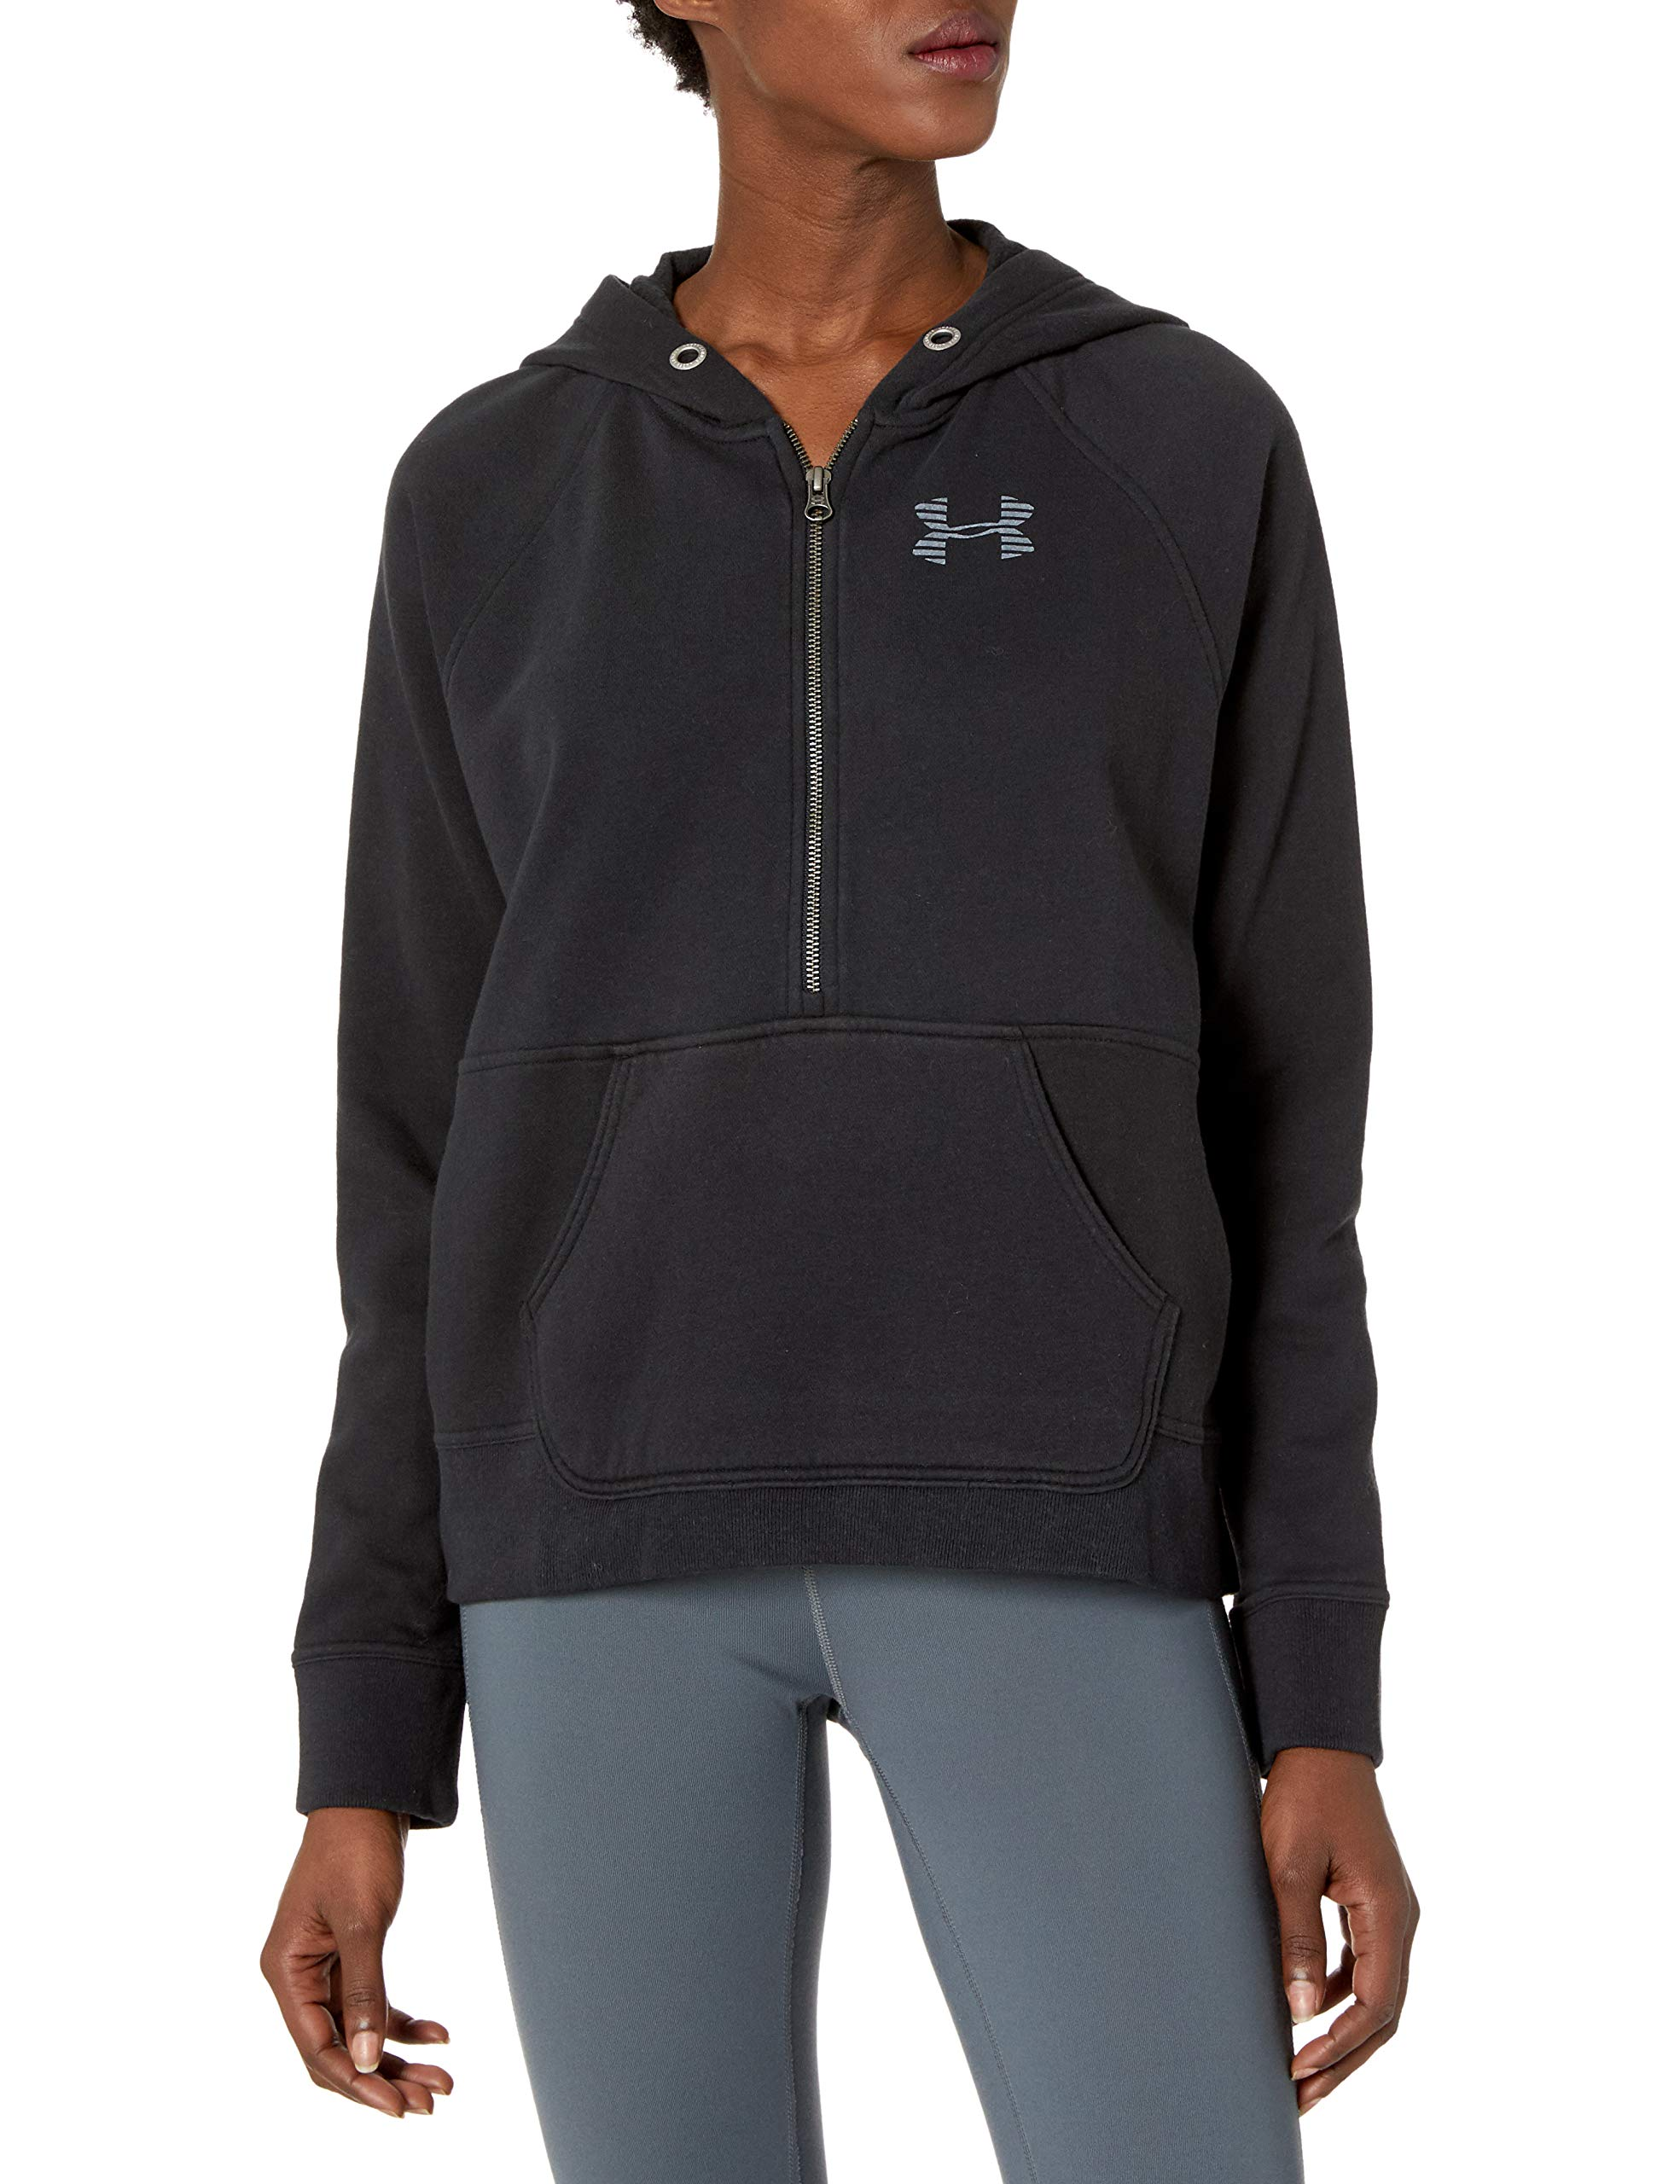 Under Armour Womens Favorite fleece 1/2 Zip